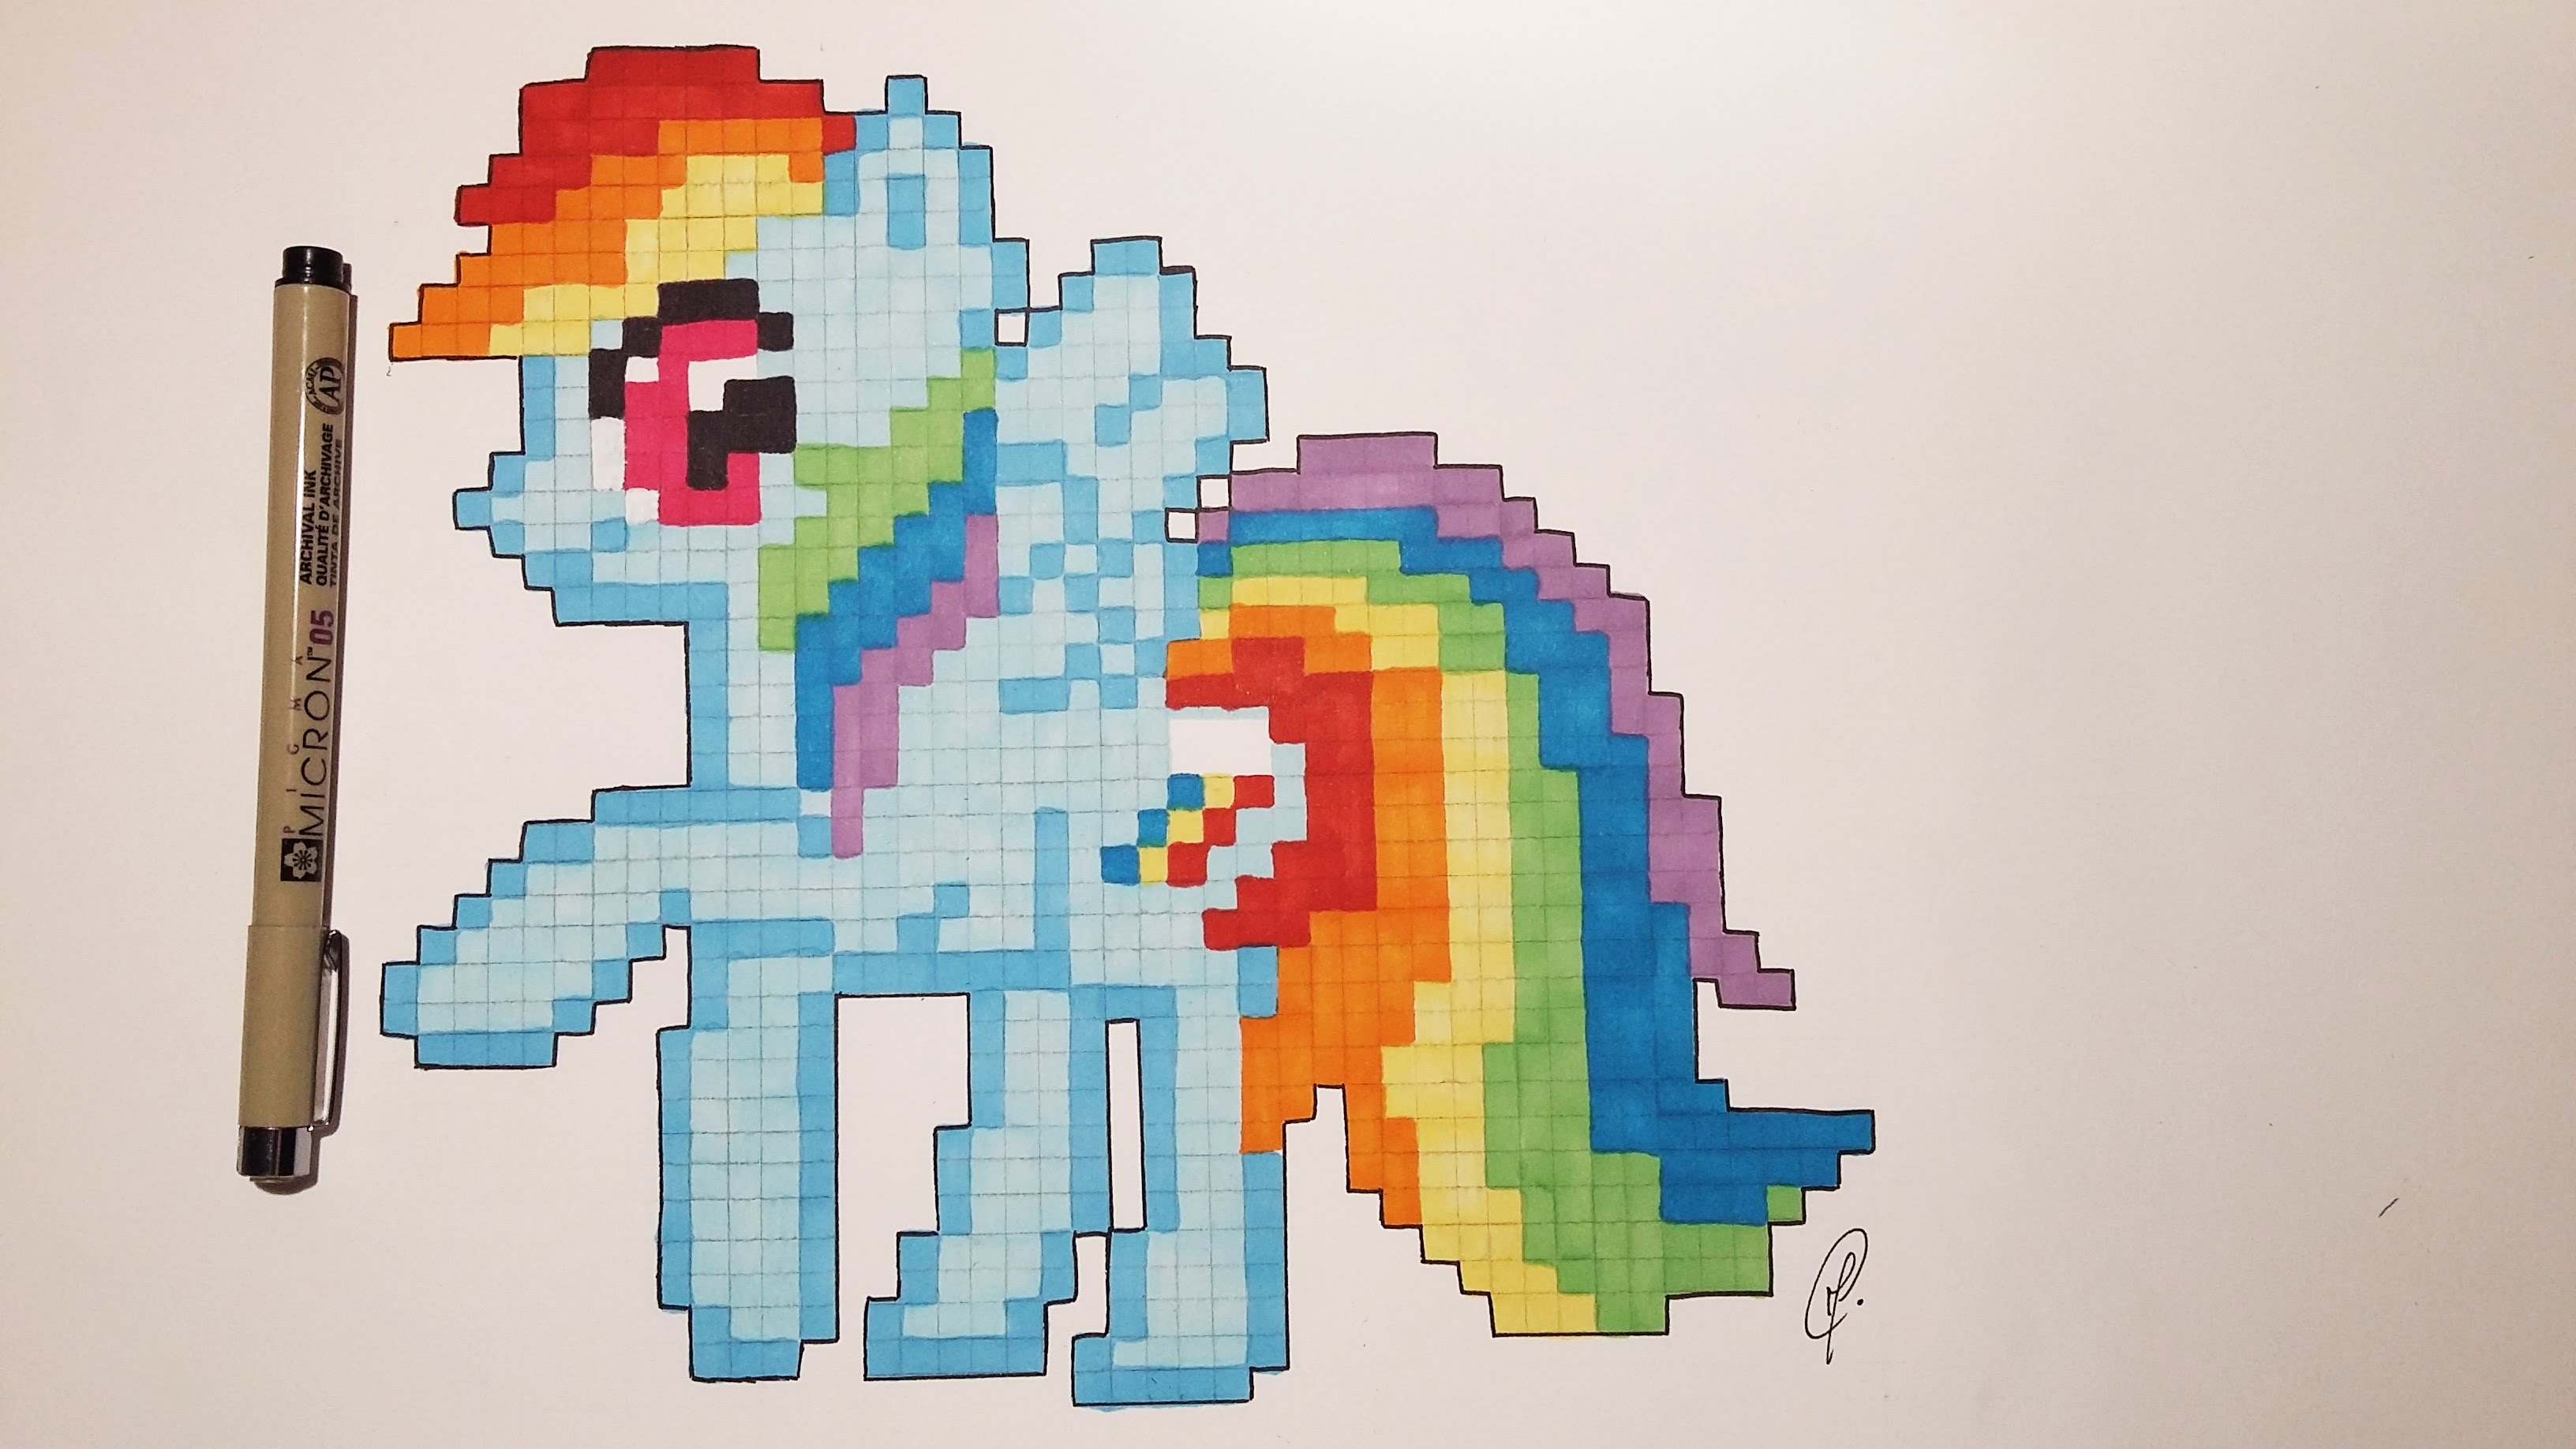 3264x1836 How To Draw Little Pony (Rainbow Dash) With Pixels